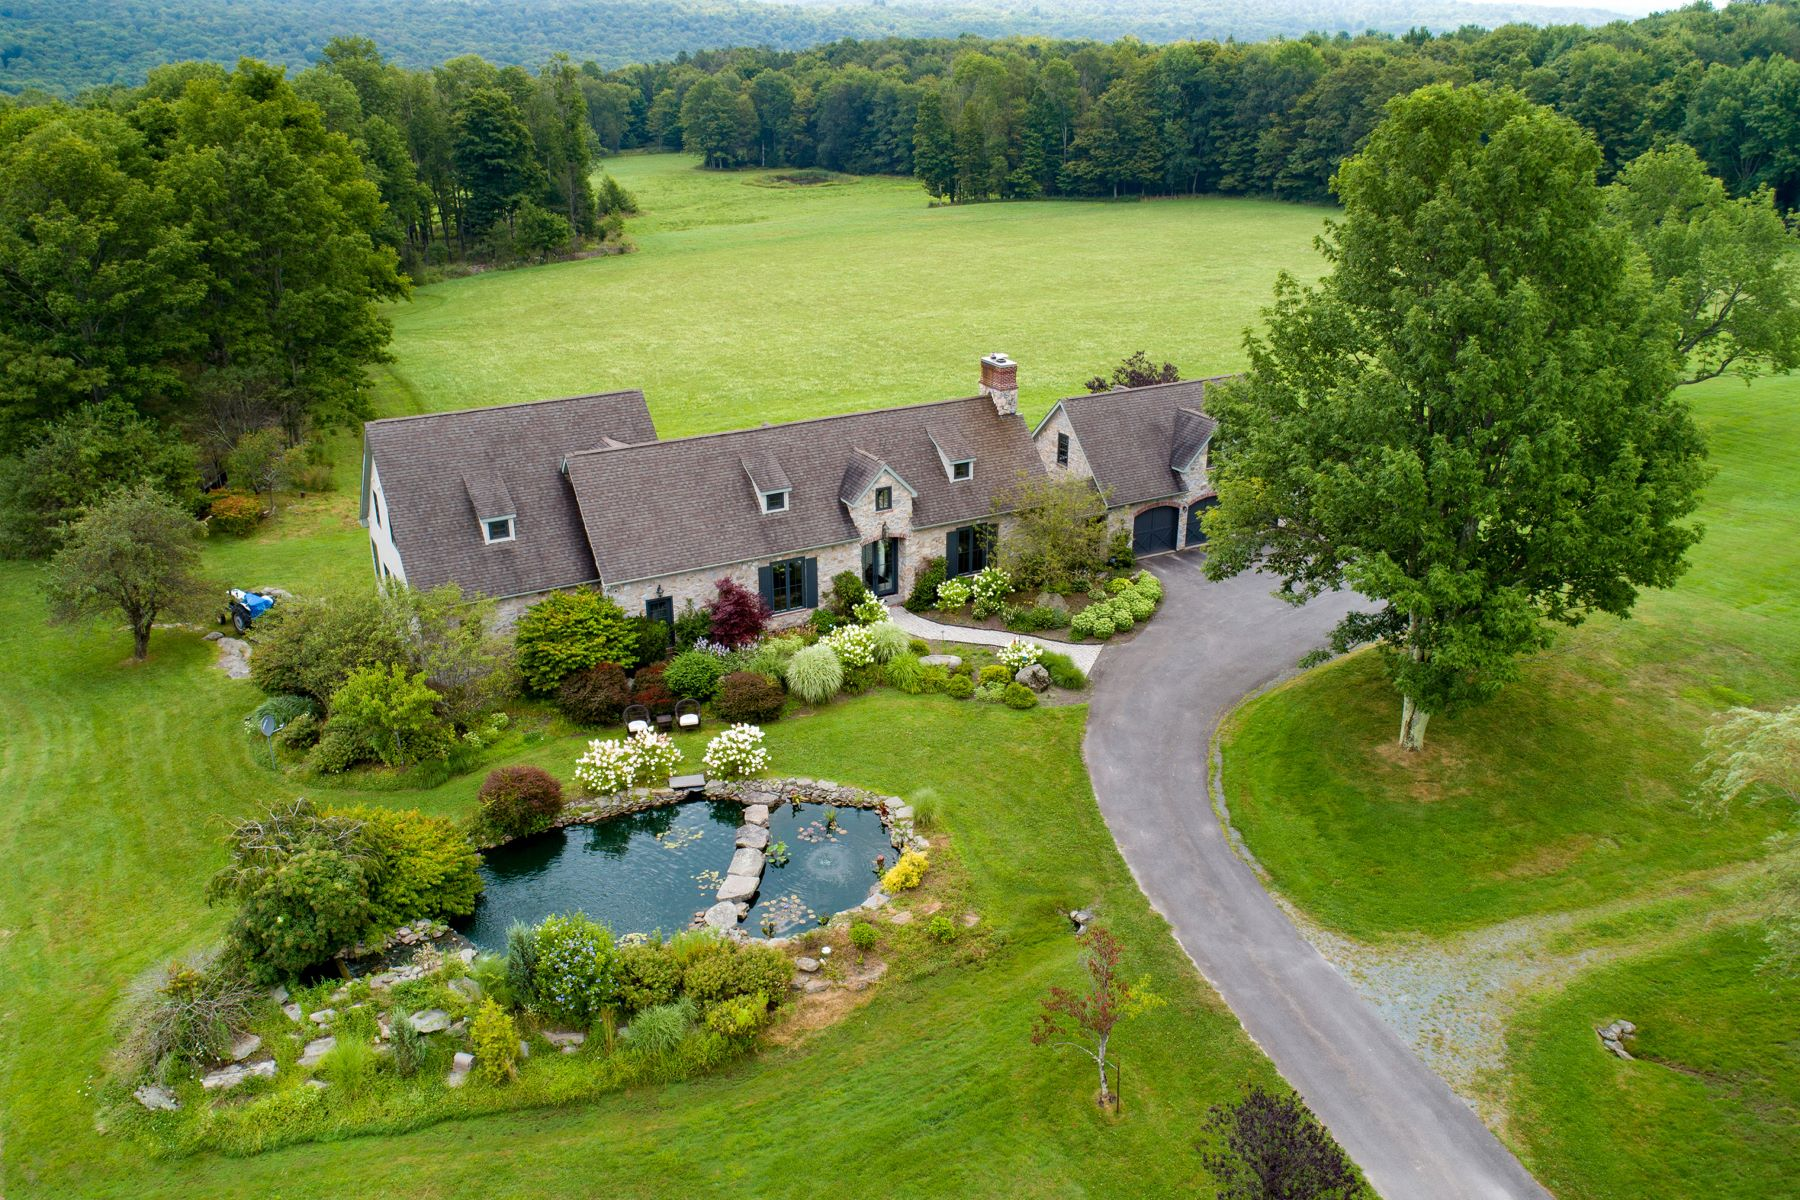 Single Family Homes for Sale at Other Style Residential in GREENTOWN, PA Greentown, Pennsylvania 18426 United States